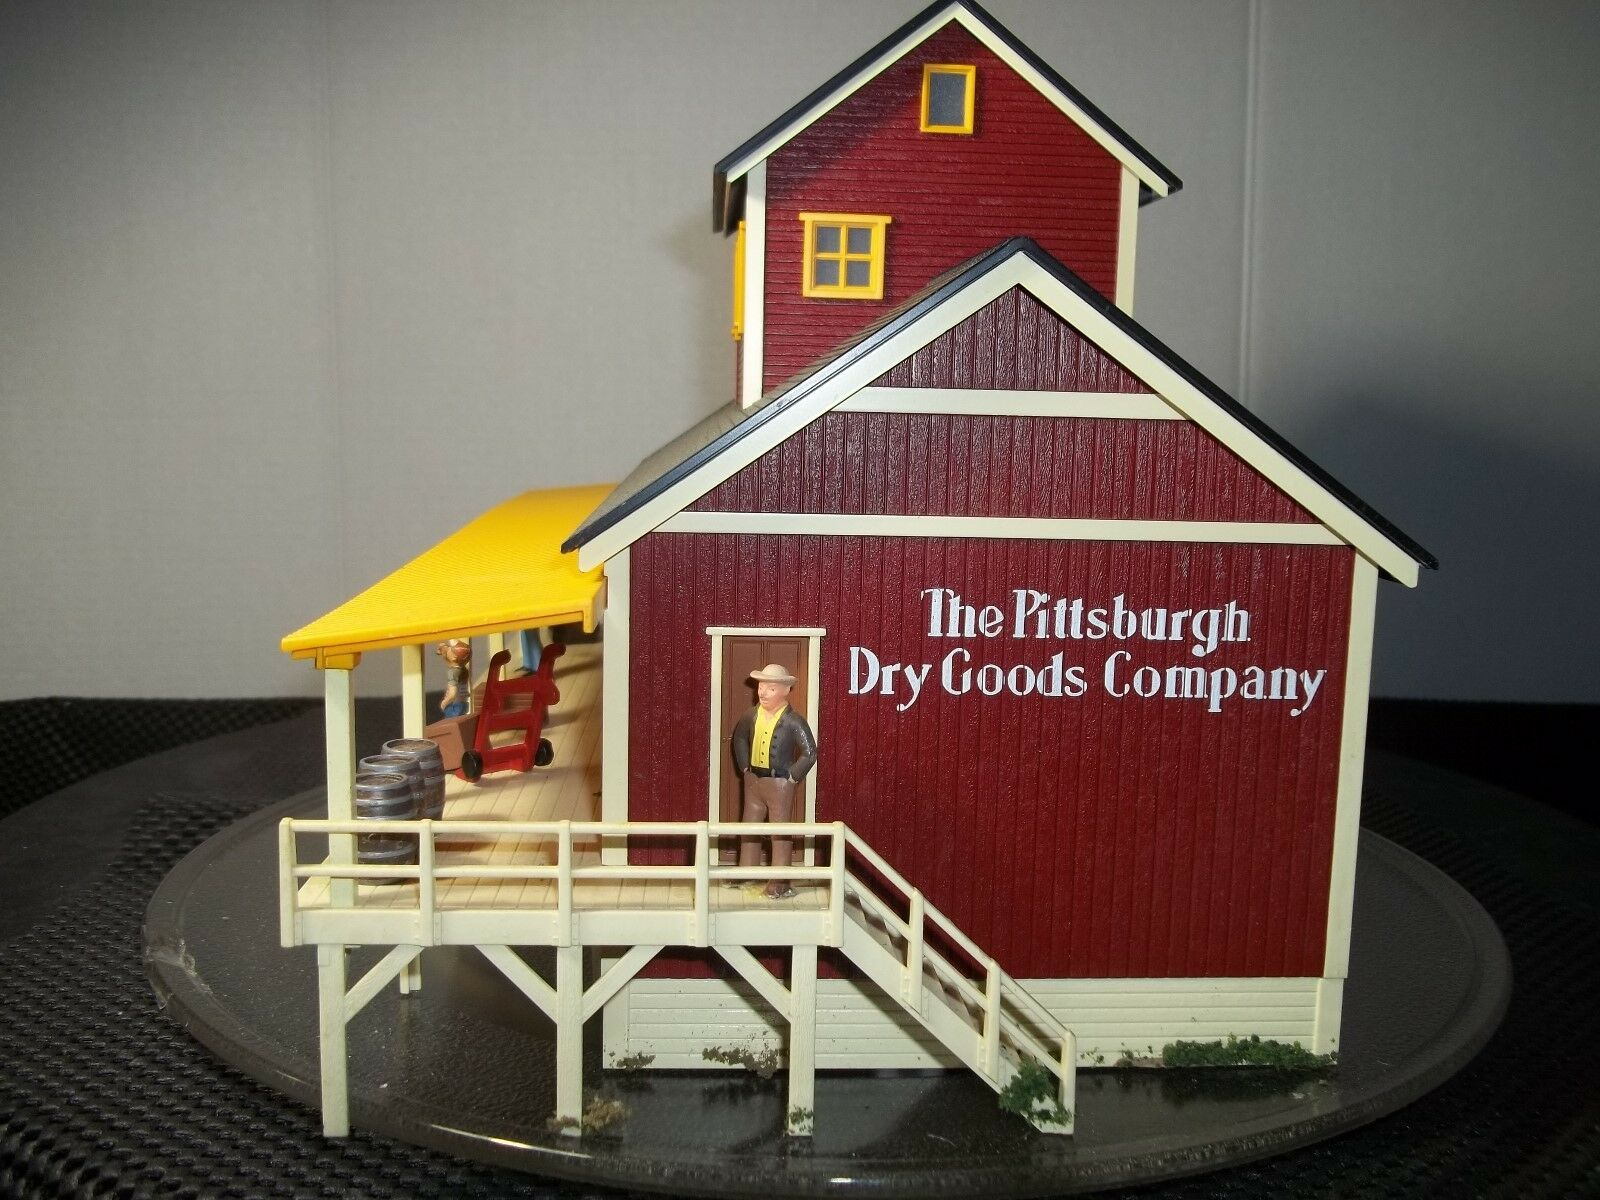 MTH O SCALE BUILDING  BY MTH